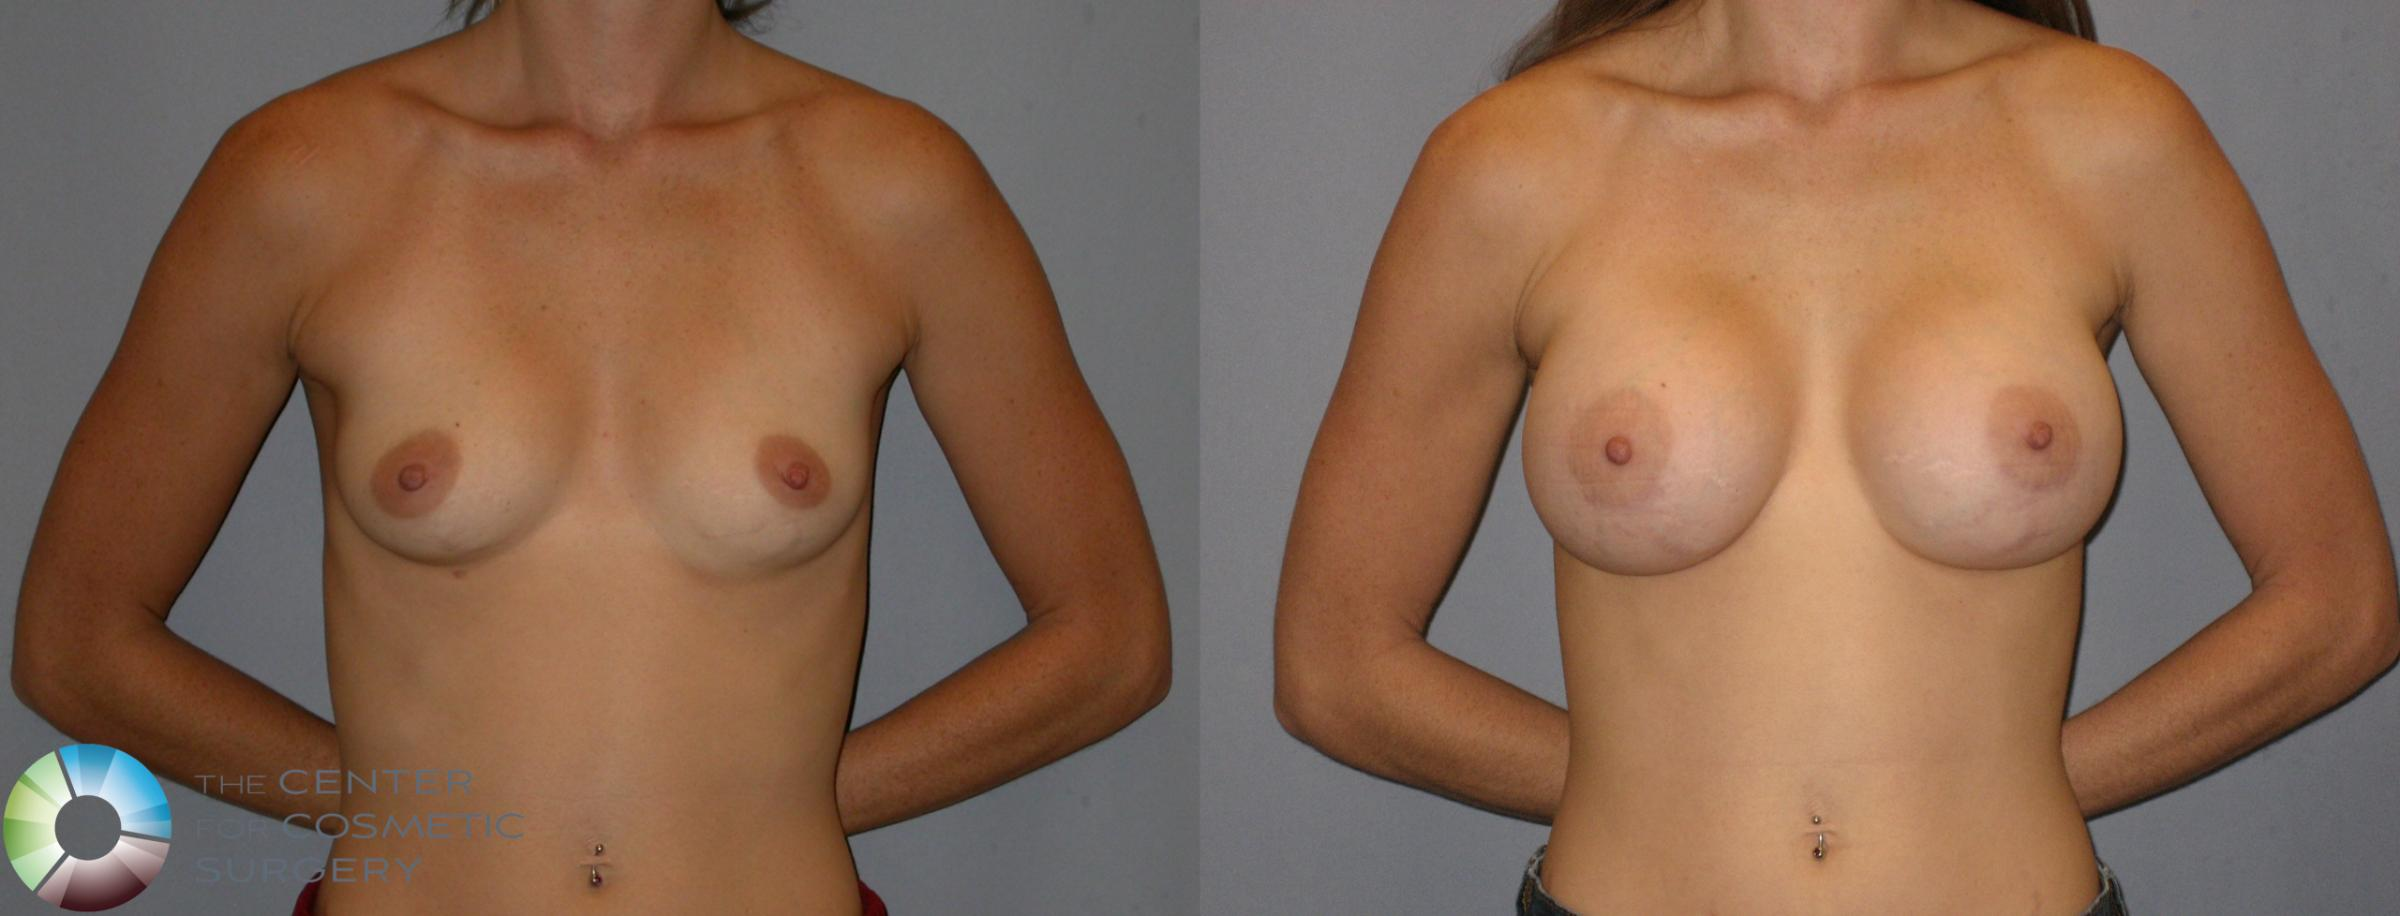 Breast Augmentation Case 175 Before & After View #1 | Golden, CO | The Center for Cosmetic Surgery